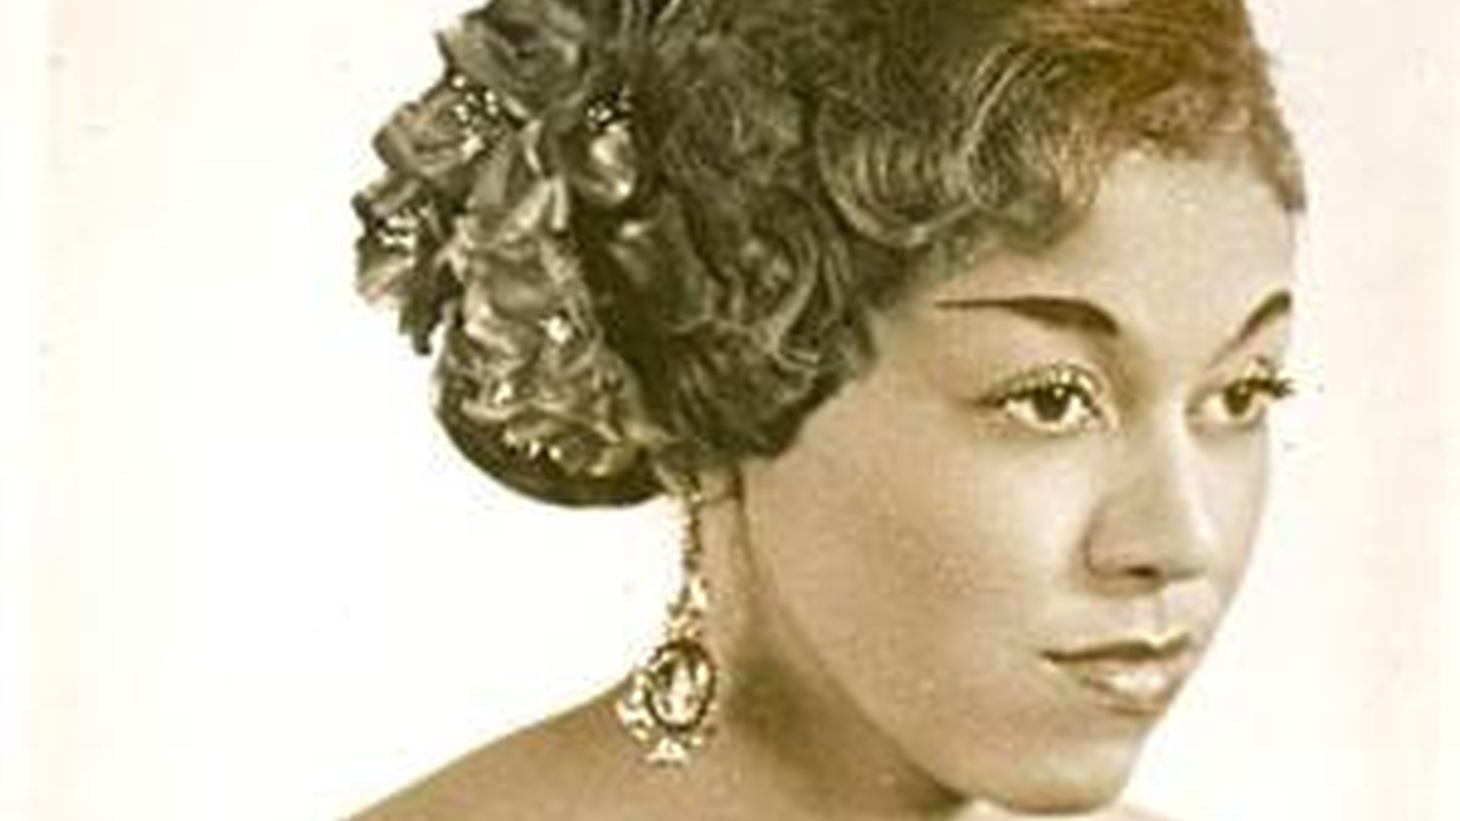 Born in a tin shack in rural Arkansas in 1922, by the 60's Rose Marie McCoy's songs had been recorded by Nat King Cole, Elvis Presley, Ike & Tina Turner, James Brown, and Aretha Franklin. Now she's nearly forgotten. (Airs 10-11am)